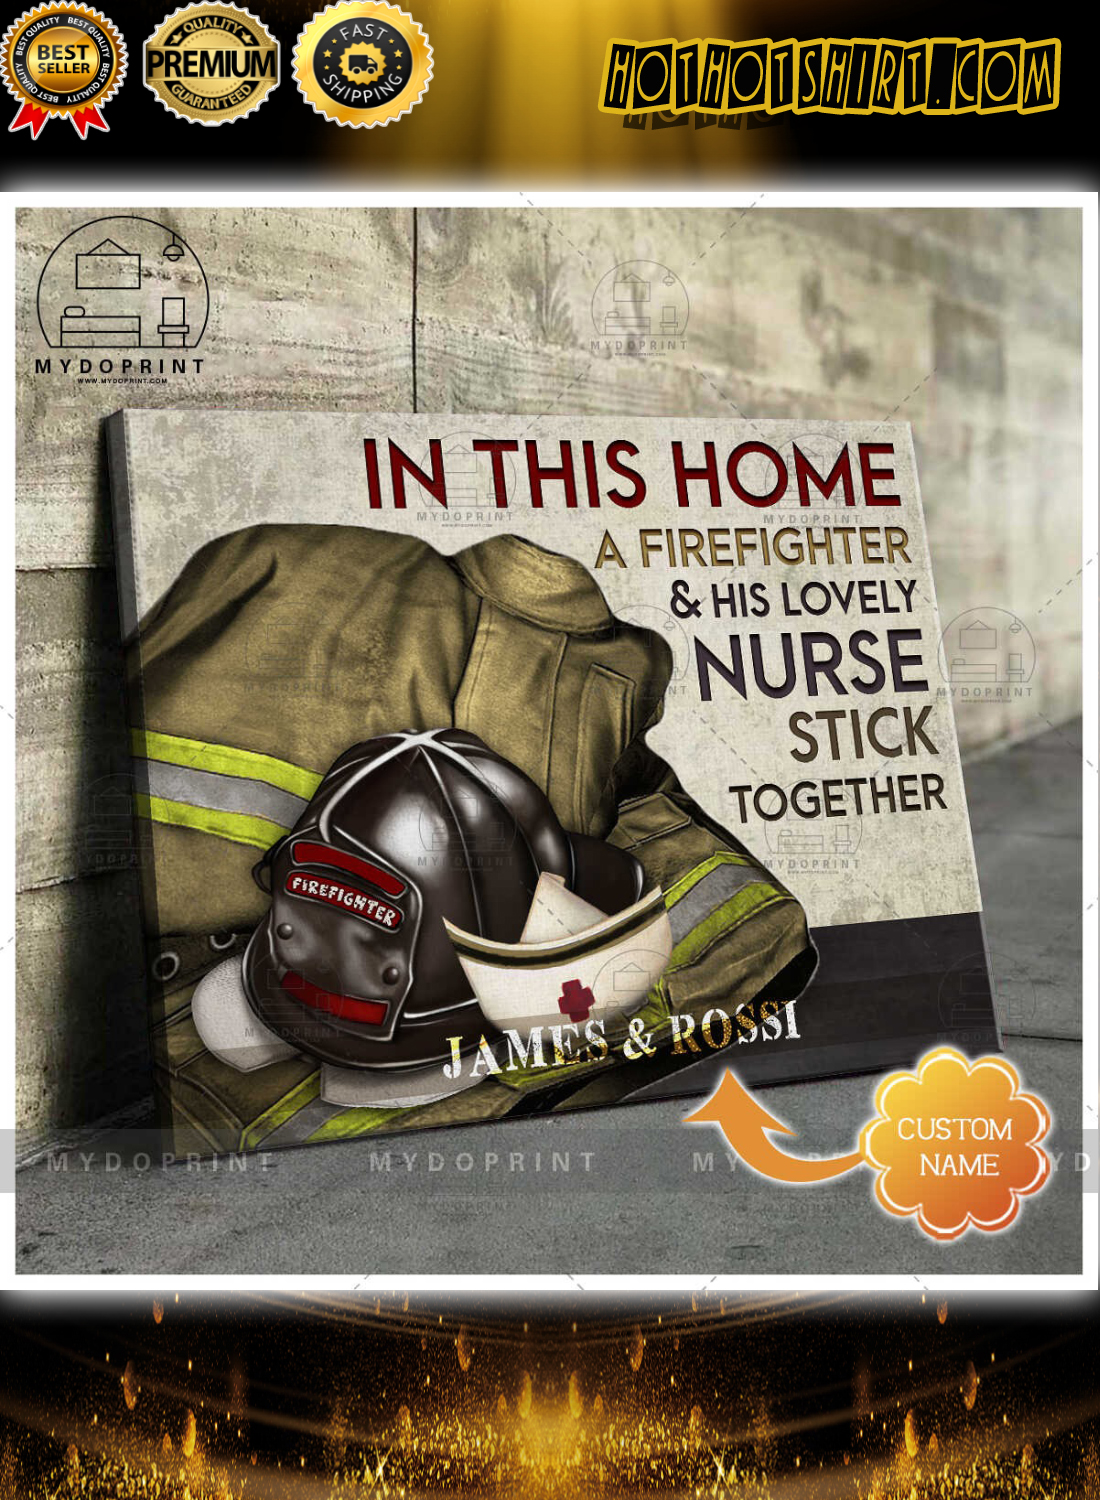 In this home a firefighter and his lovely nurse stick together personalized canvas 3